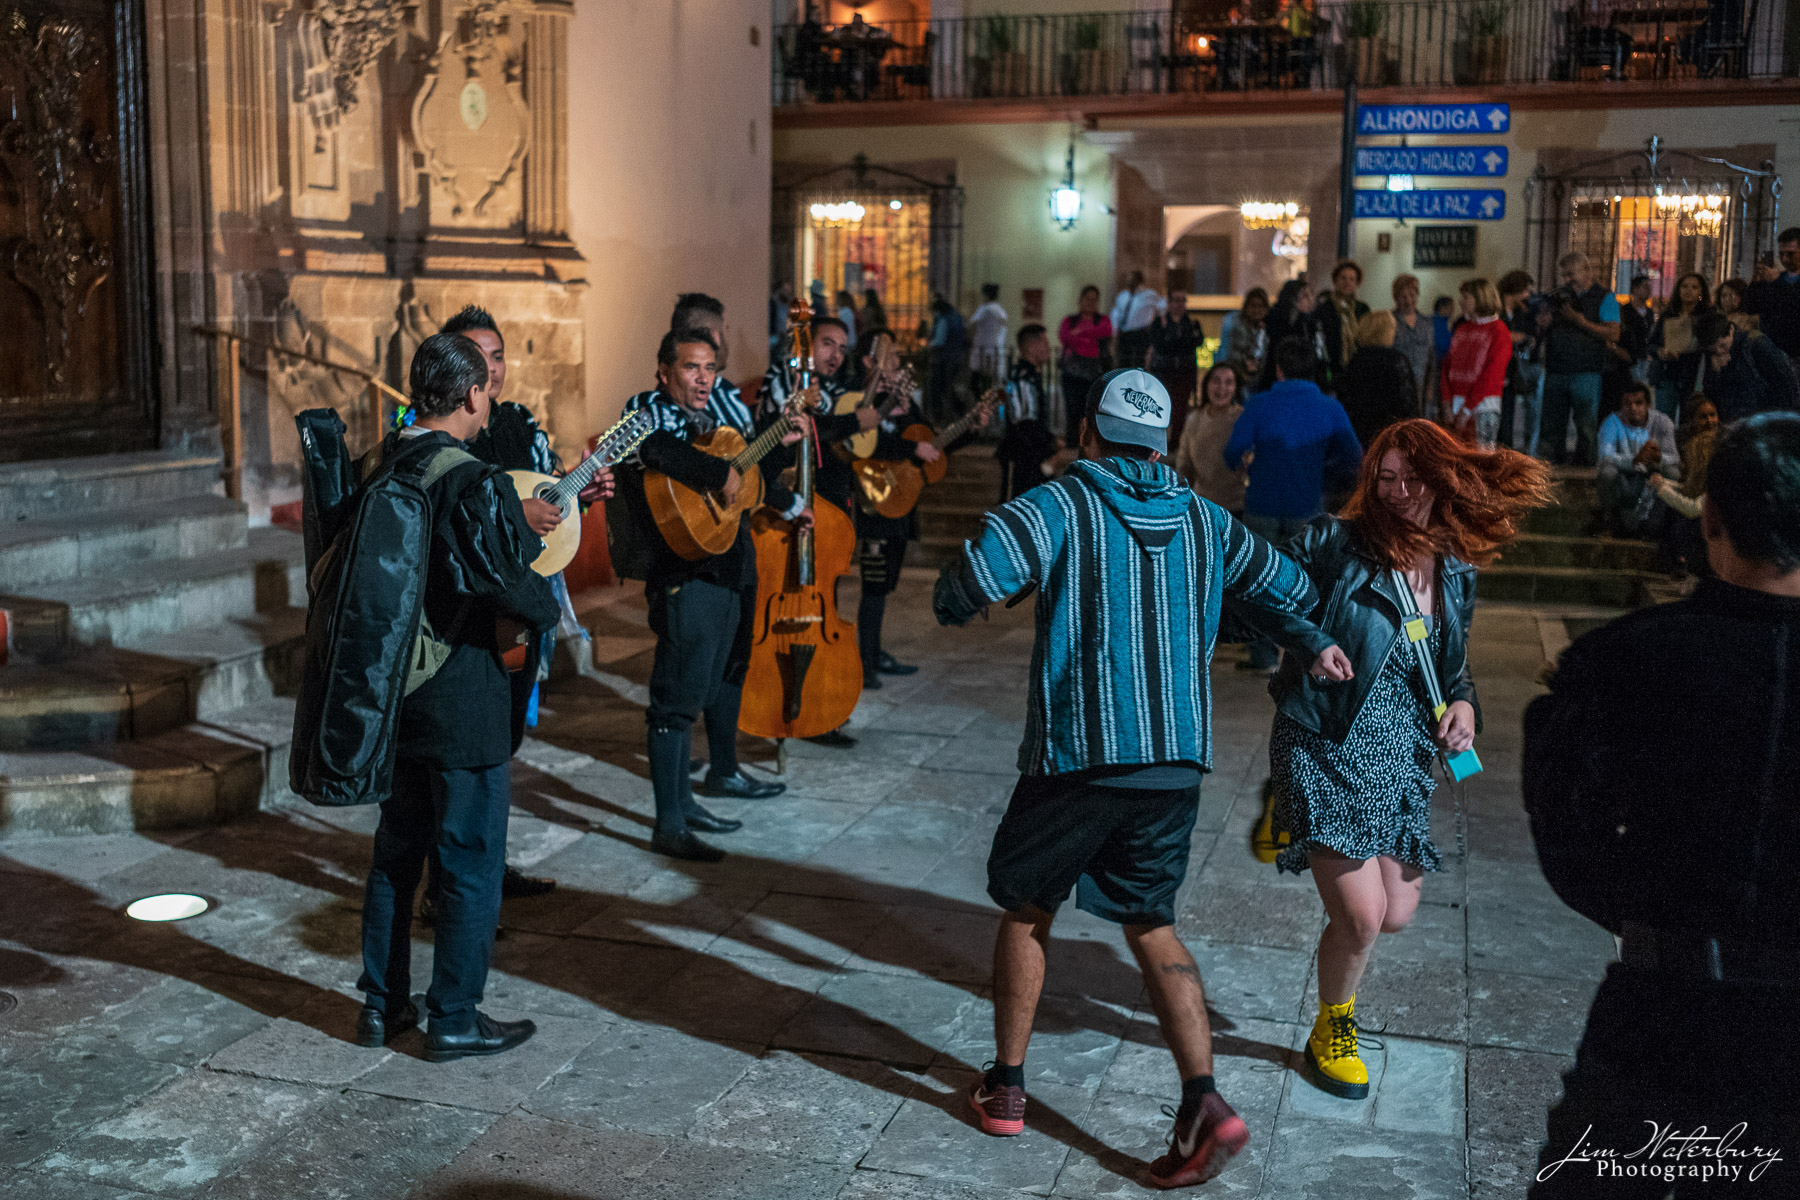 A couple dance in front of the main cathedral in Guanajuato to the music of a local Mexican band.